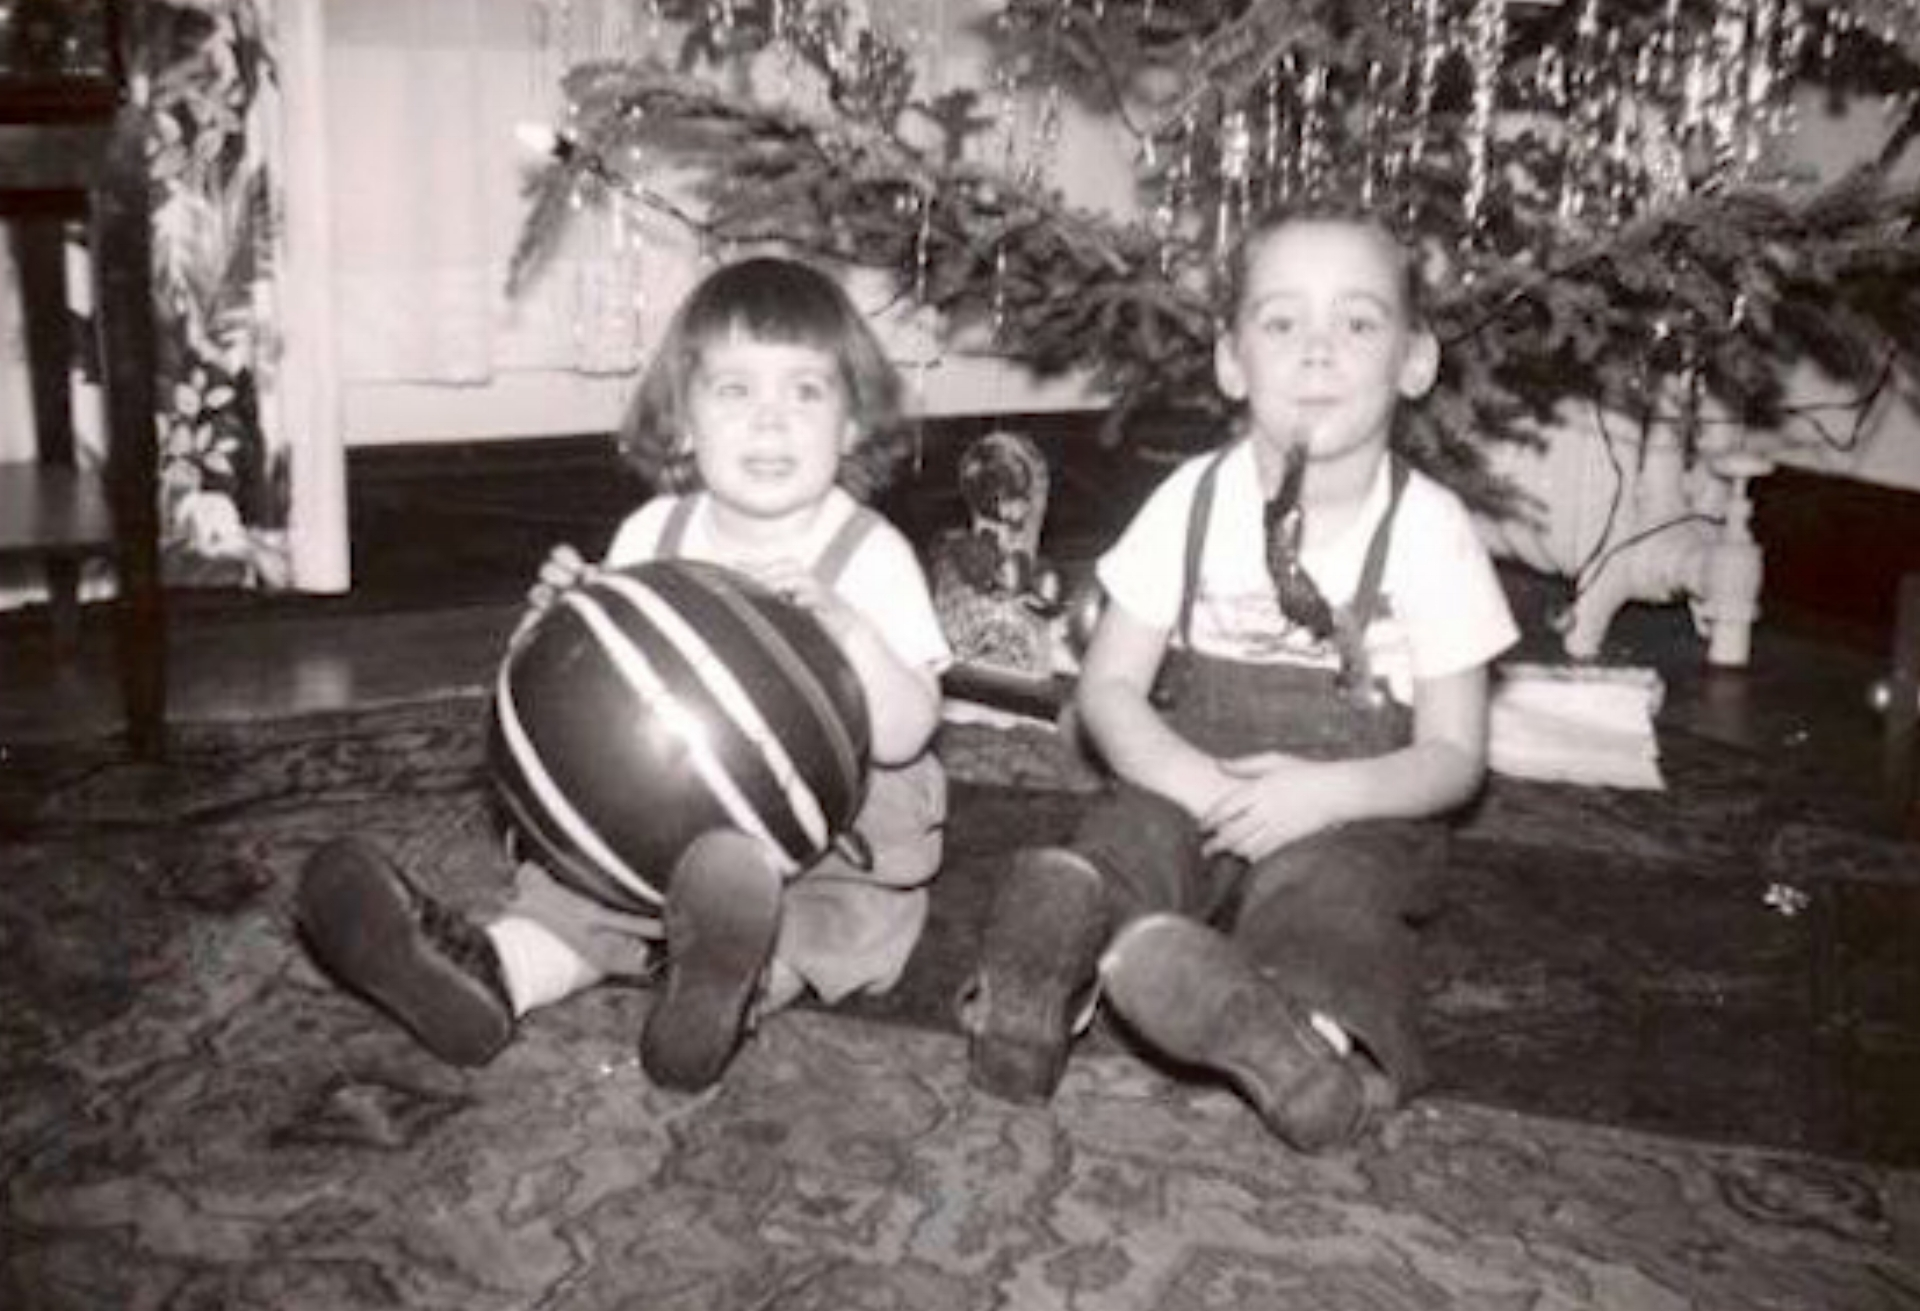 Barbara Ryan (left) and her older sister, Anita Solick Oswald, sit around the Christmas tree in their childhood home on West Madison Street in 1951.